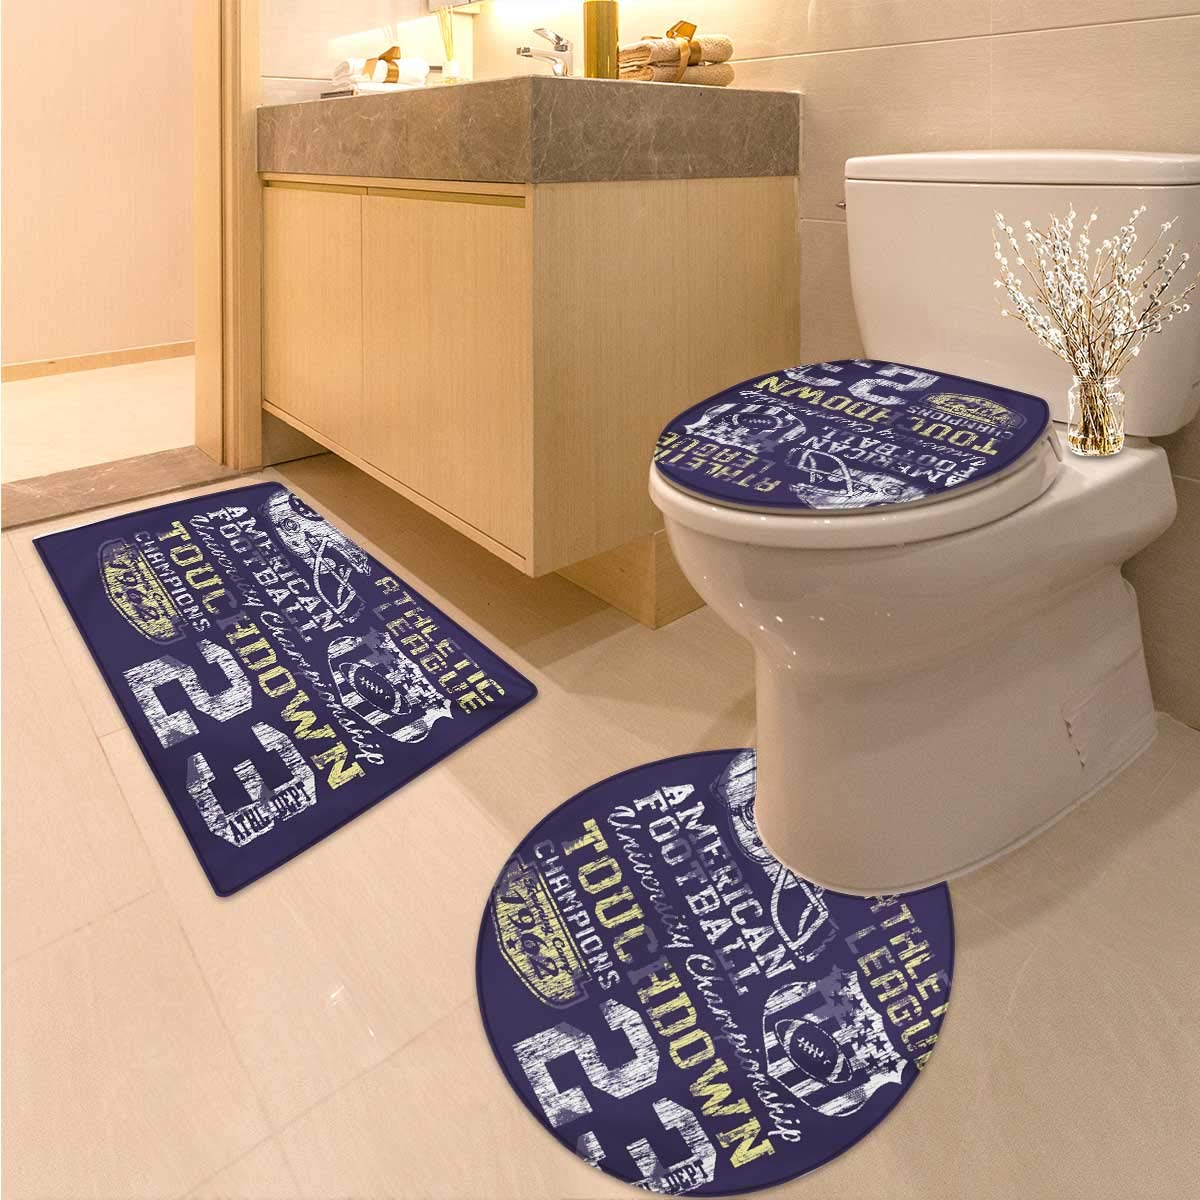 Anhuthree Sports bathmat Toilet mat Set Retro Style American Football College Theme Illustration Athletic Championship Apparel 3 Piece Shower Mat Set Purple